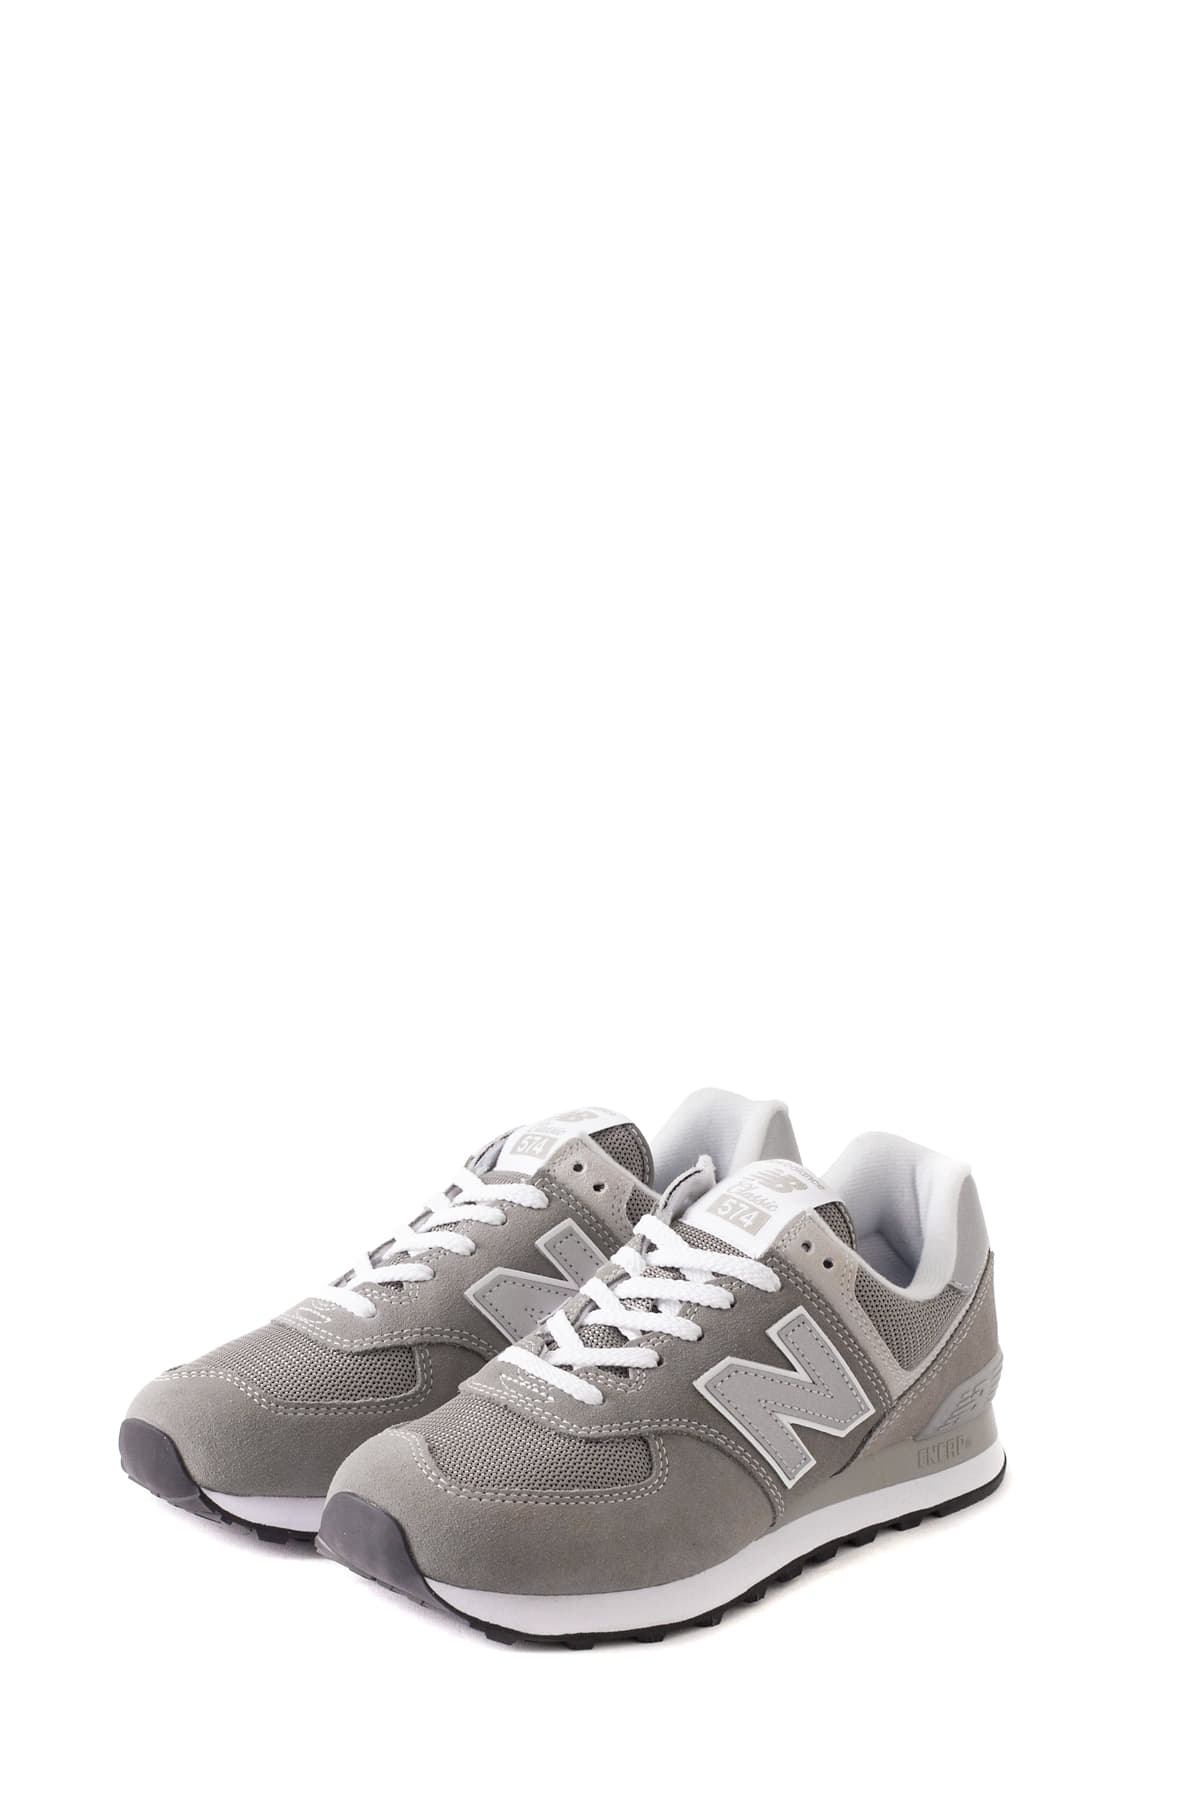 New Balance : ML574EGG (Grey)